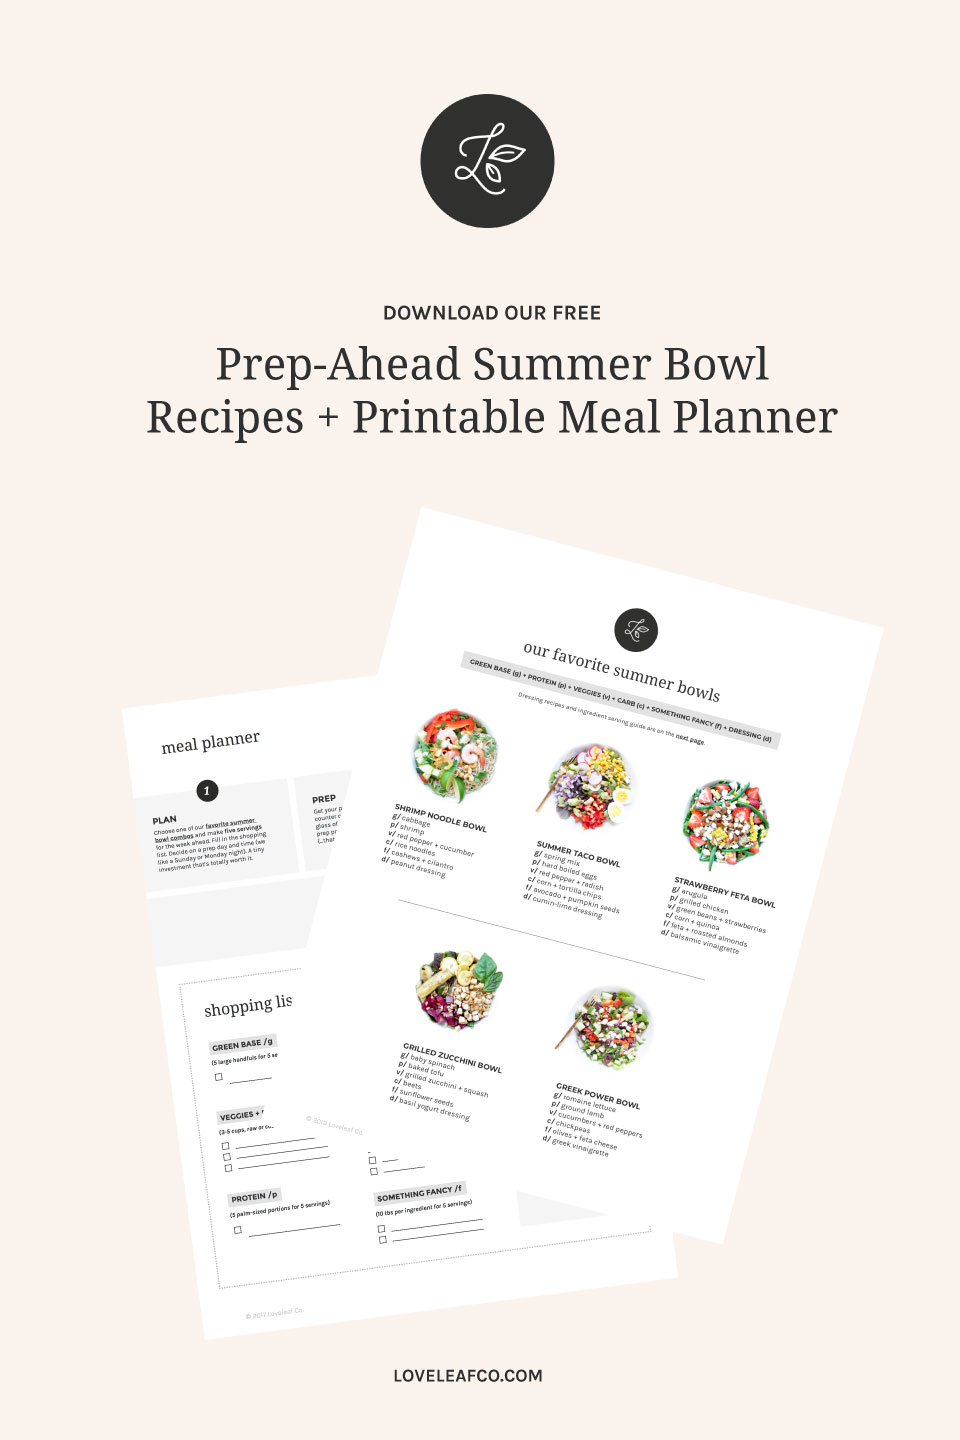 PREP-AHEAD SUMMER BOWL RECIPES + PRINTABLE MEAL PLANNER   Your ultimate summer meal prep guide for easy, healthy salad and bowl recipes. Our bowl formula is like a little blueprint for your mind, giving you the structure to make satisfying prep-ahead meals, but also the freedom to easily change it up. Includes recipes, shopping list, and meal planner. Click to download!   LOVELEAF CO. #mealprep #summerrecipes #summersalad #summer #mealplan #mealplanning #printable #mealplanner #salad #easyrecipes #bowls #bowl #glutenfree #dairyfree